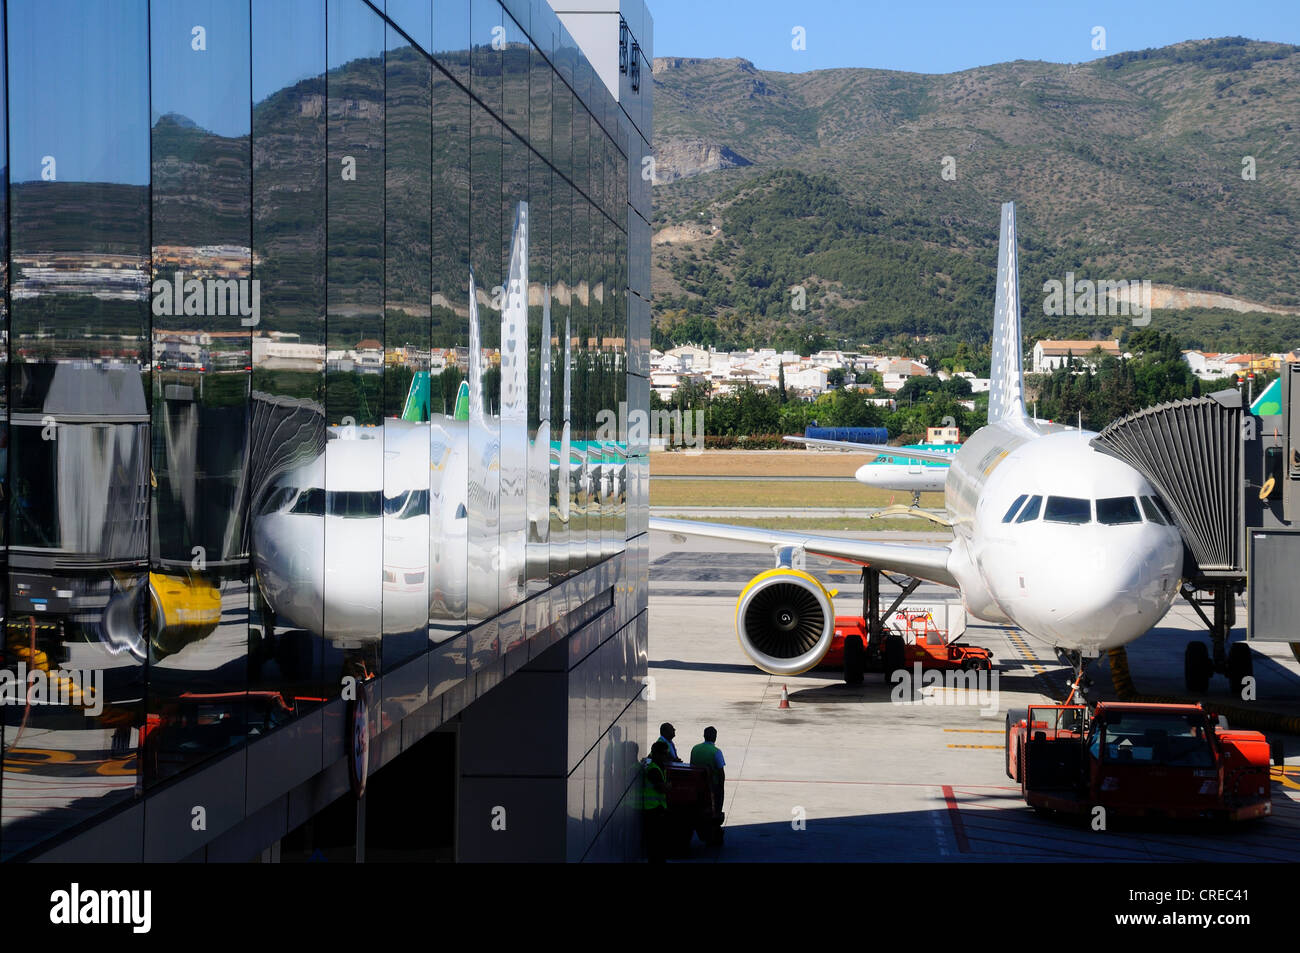 Vueling A-320 Aircraft reflected in glass sided terminal, Malaga Airport, Malaga, Andalusia, Spain, Western Europe. - Stock Image